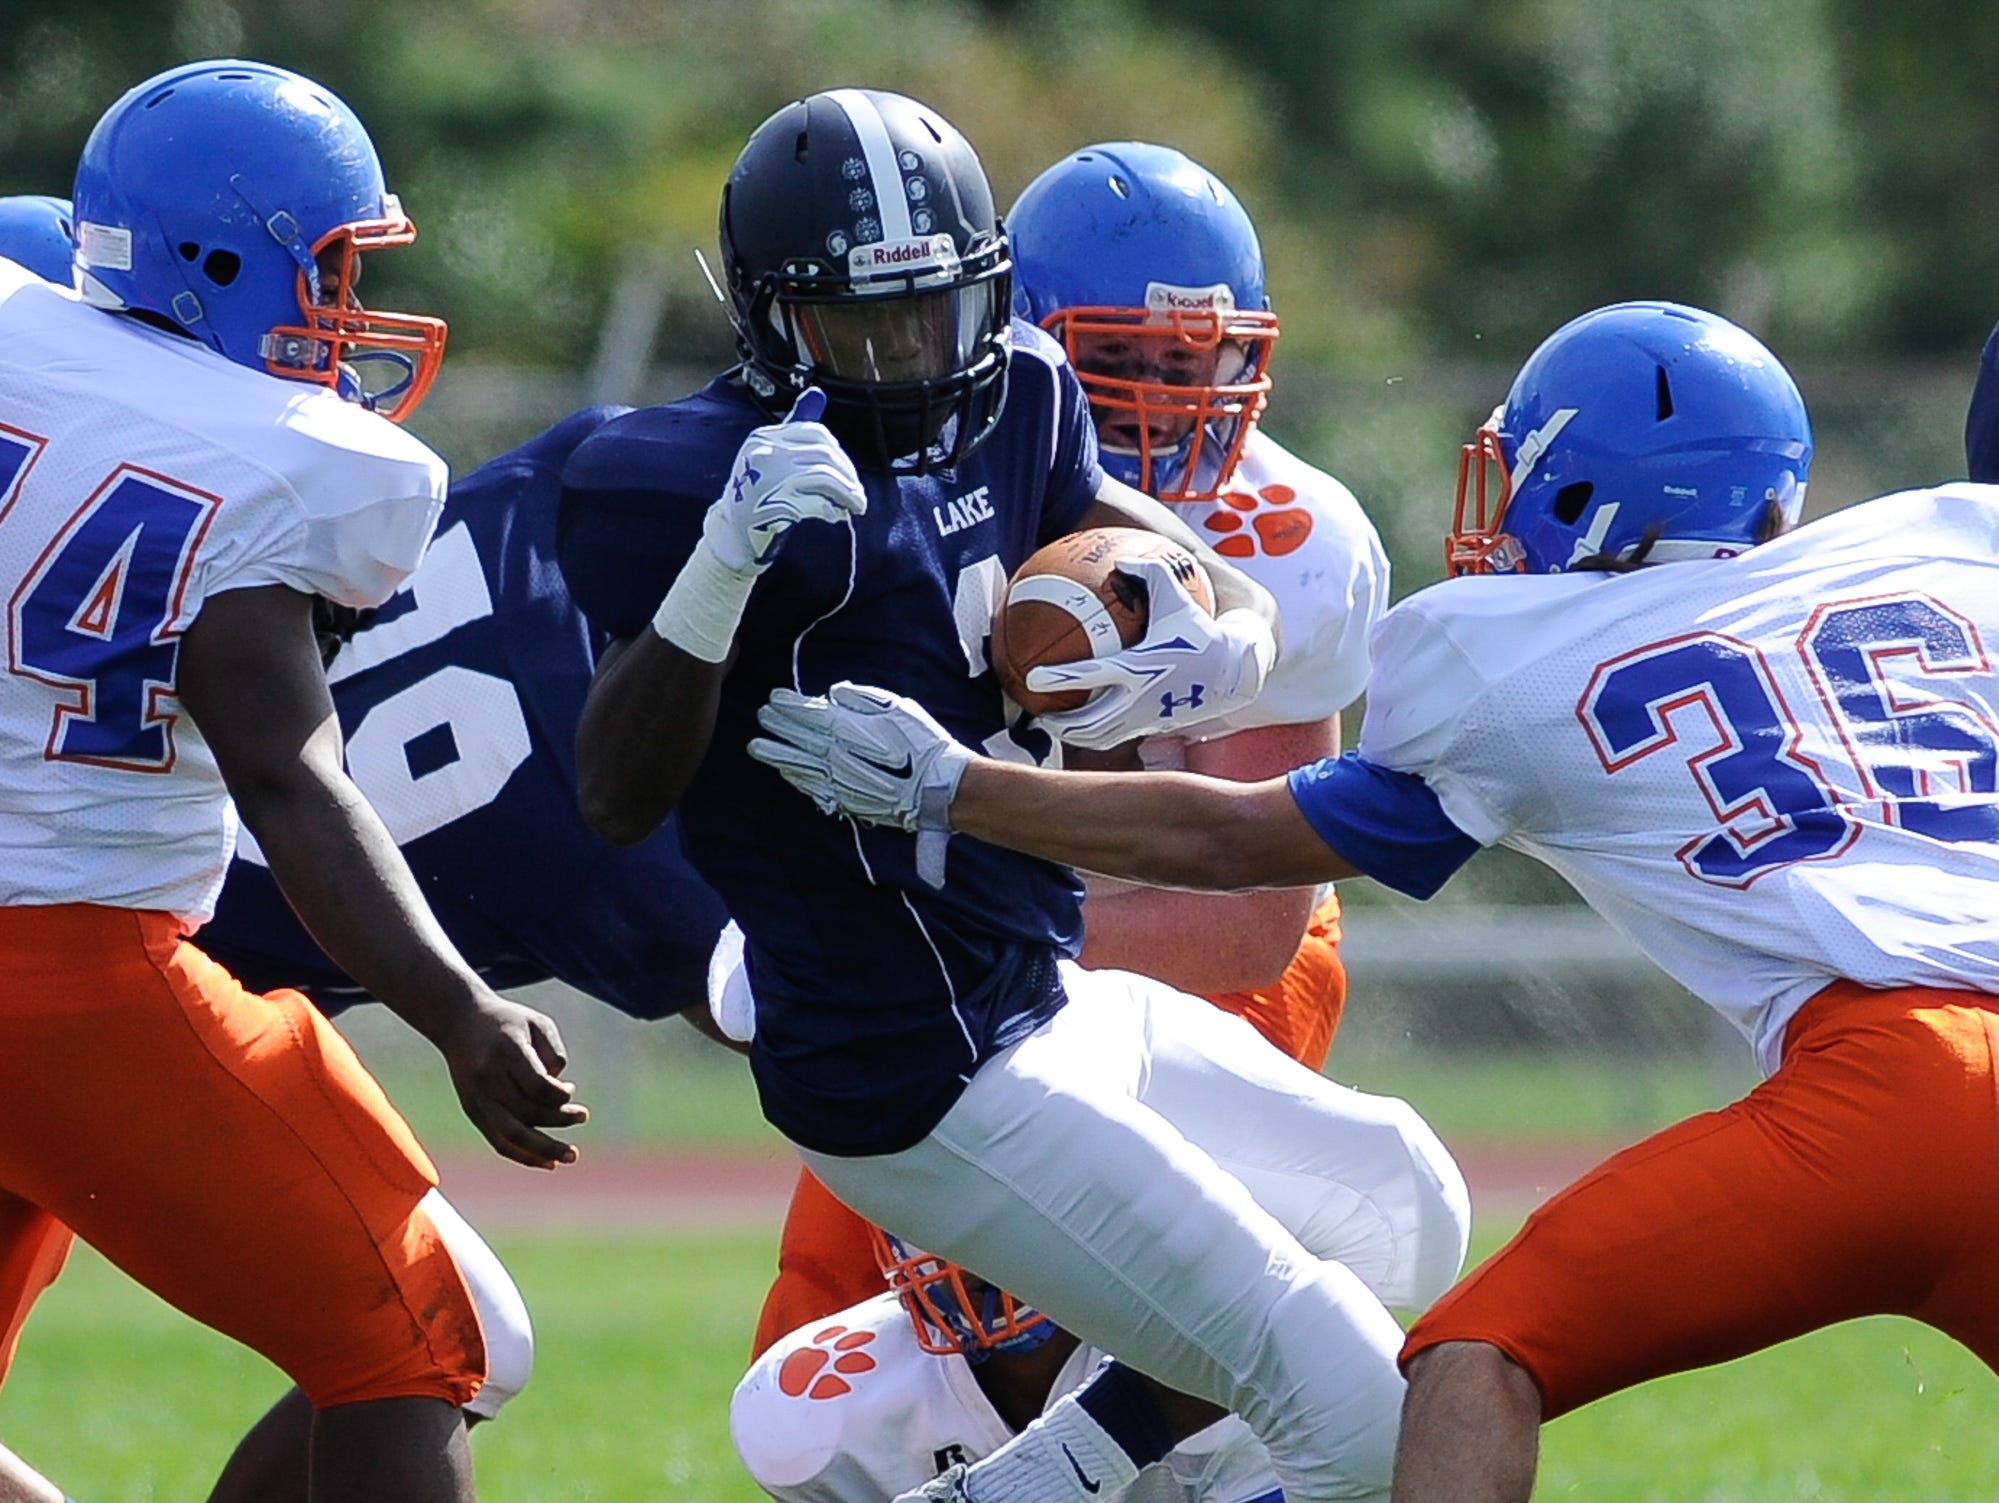 Lake Forest's #3 Trevor Milton runs the ball in their 19-14 win over Delmar on Saturday at Lake Forest High School.